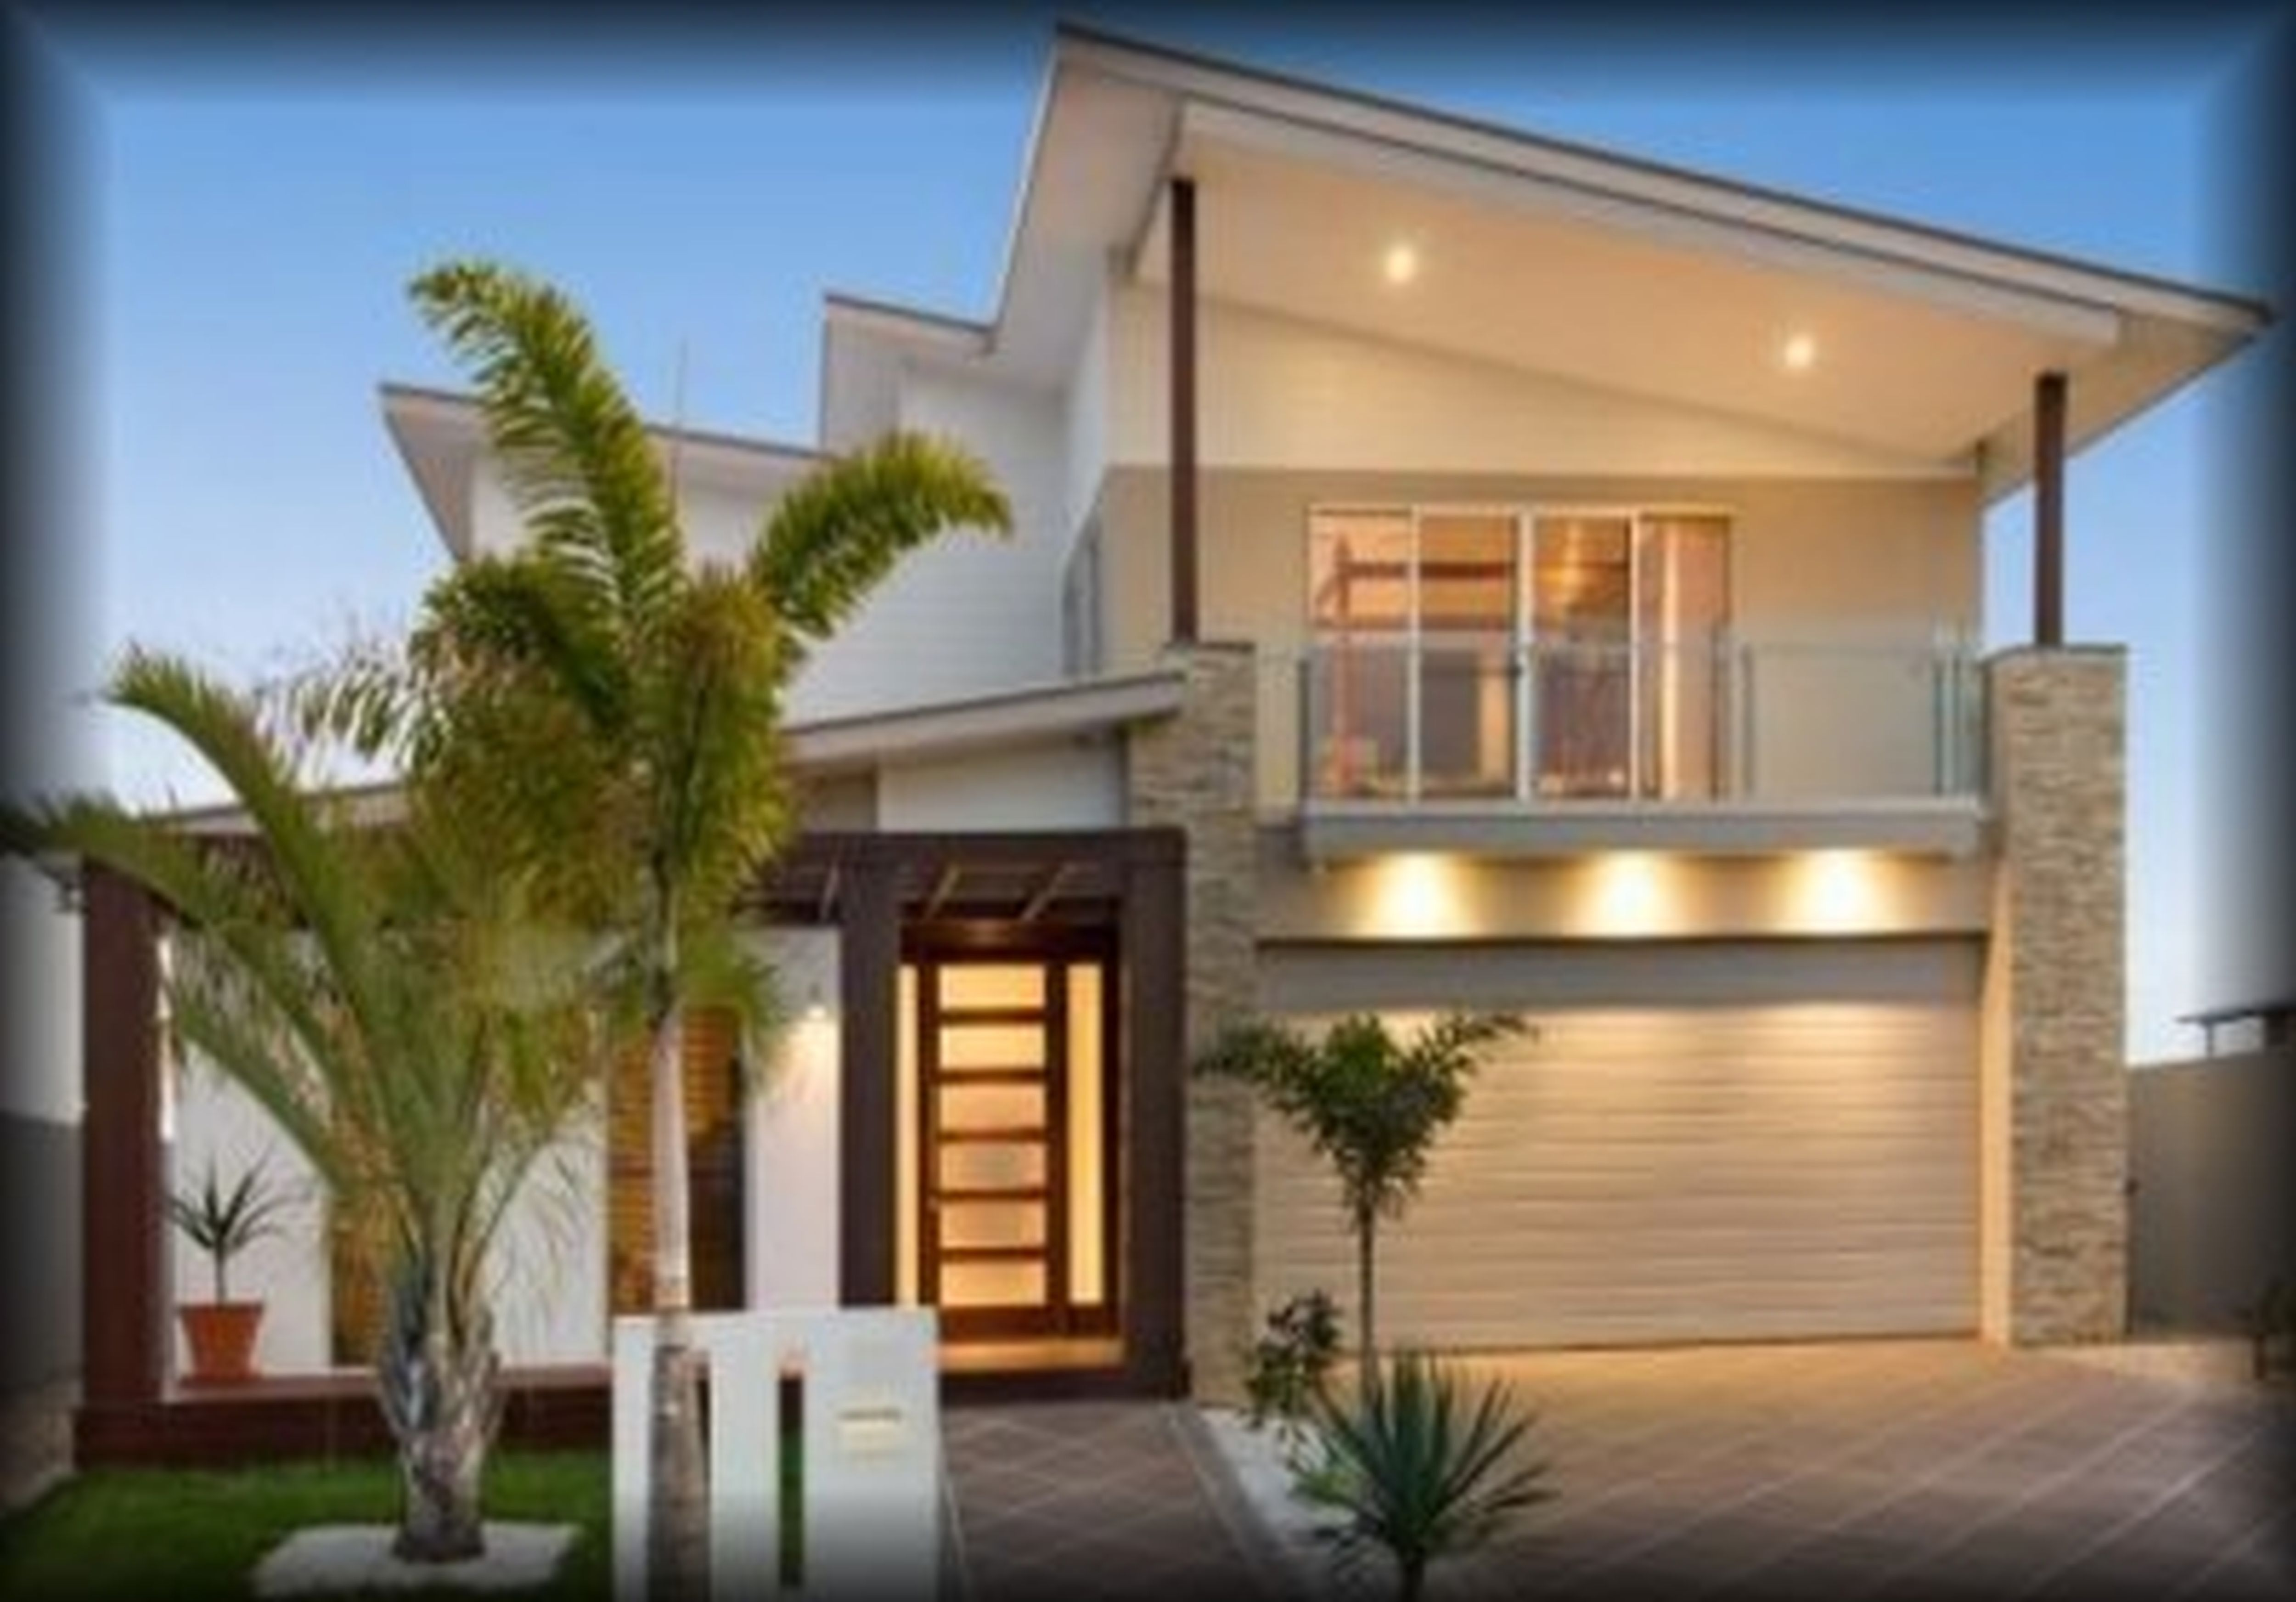 Small house design storey house designs and floor plans for House designs australia